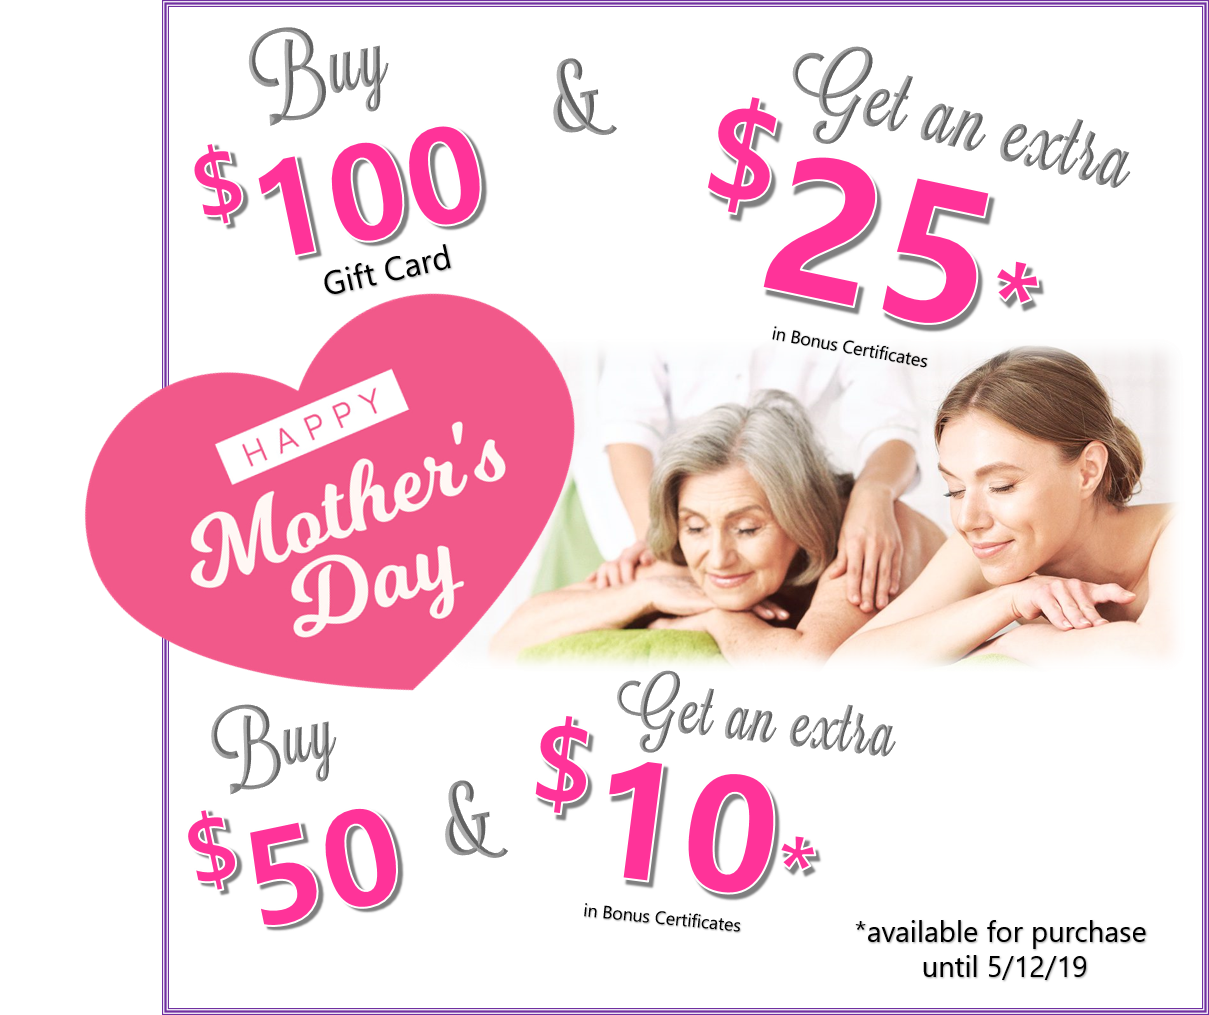 Mothers Day 2019 Offer